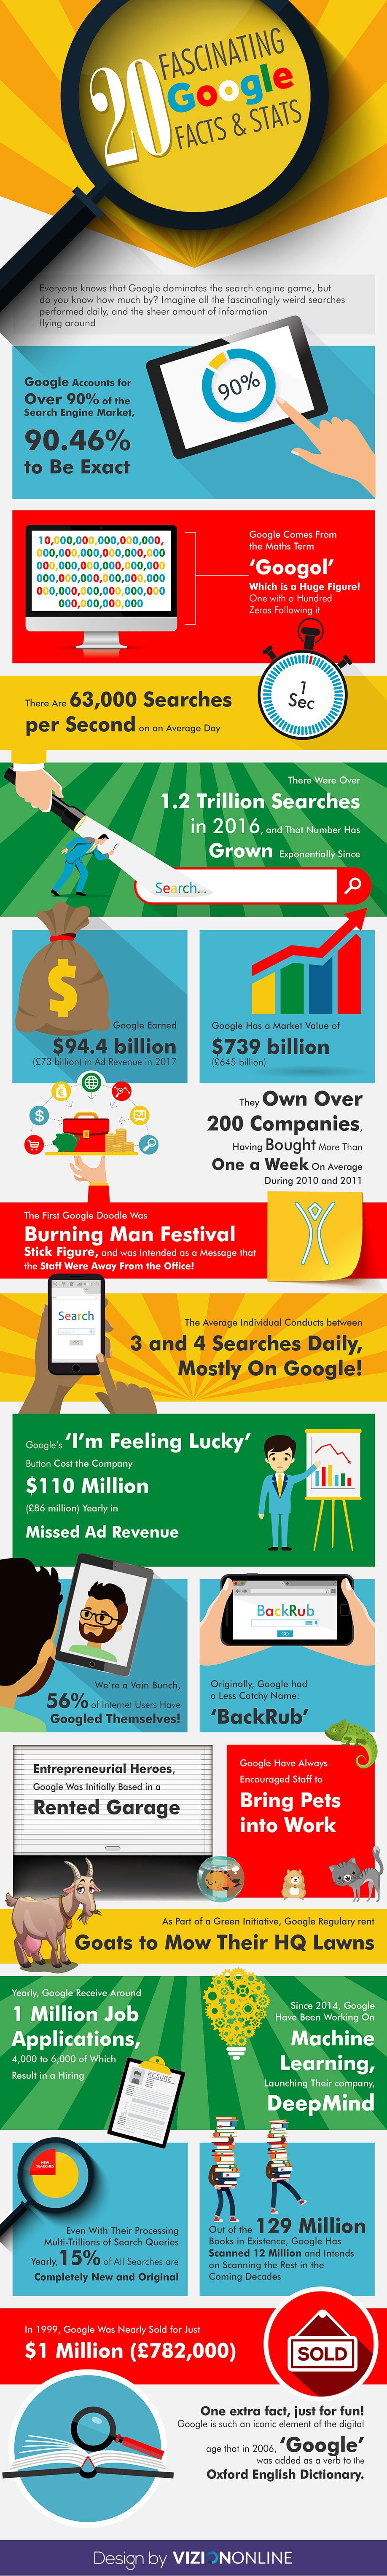 20 Fascinating Google Facts & Stats by VizionOnline